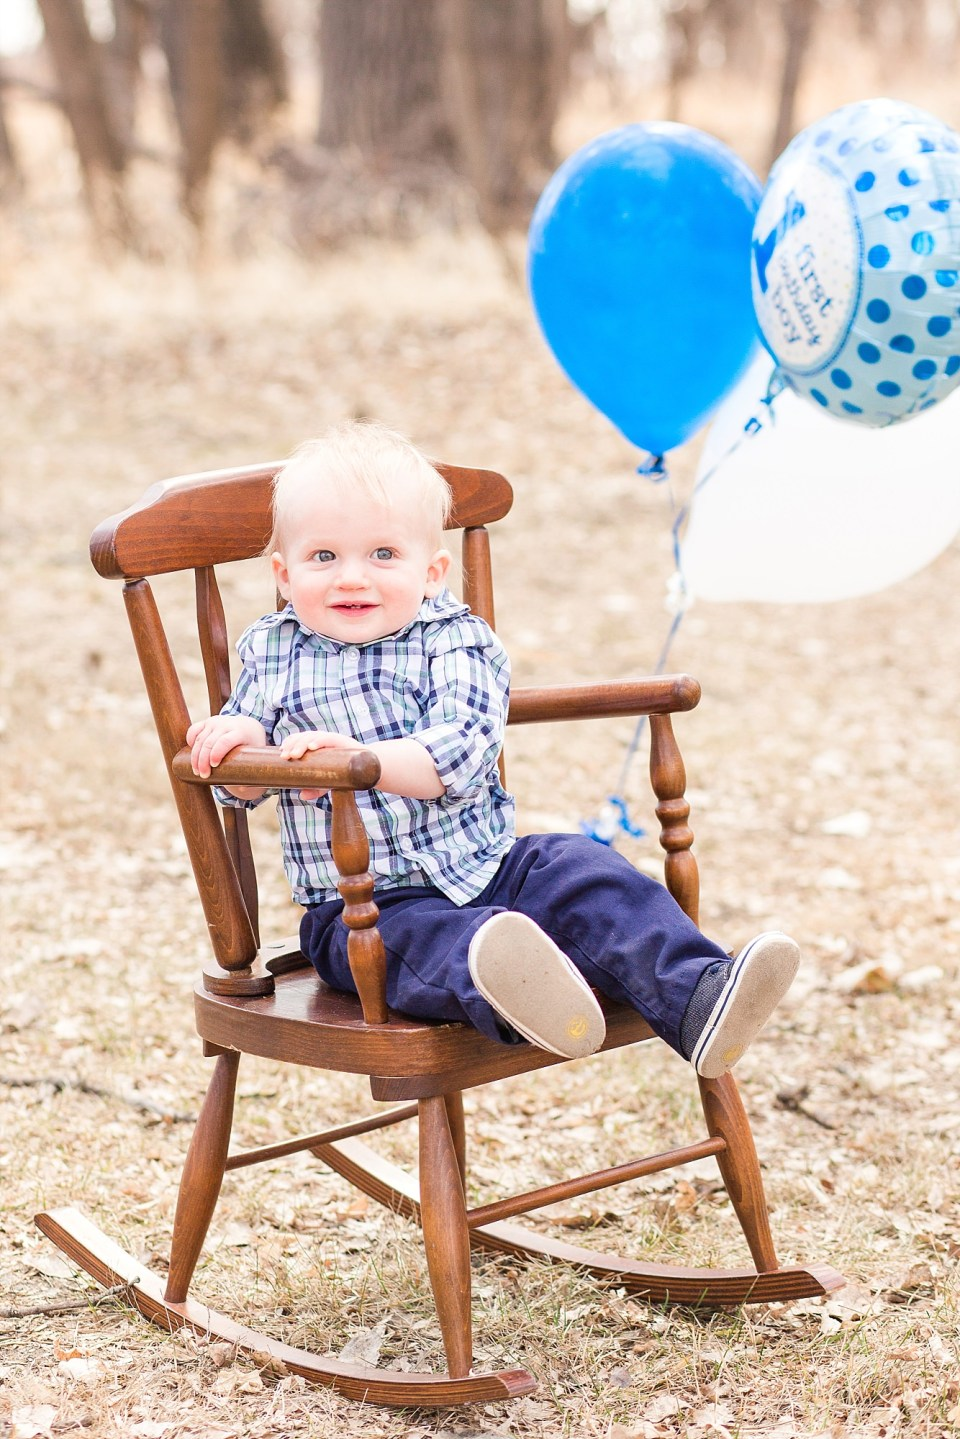 A First Birthday boy sits in a rocking chair with blue balloons blowing in the wind behind him